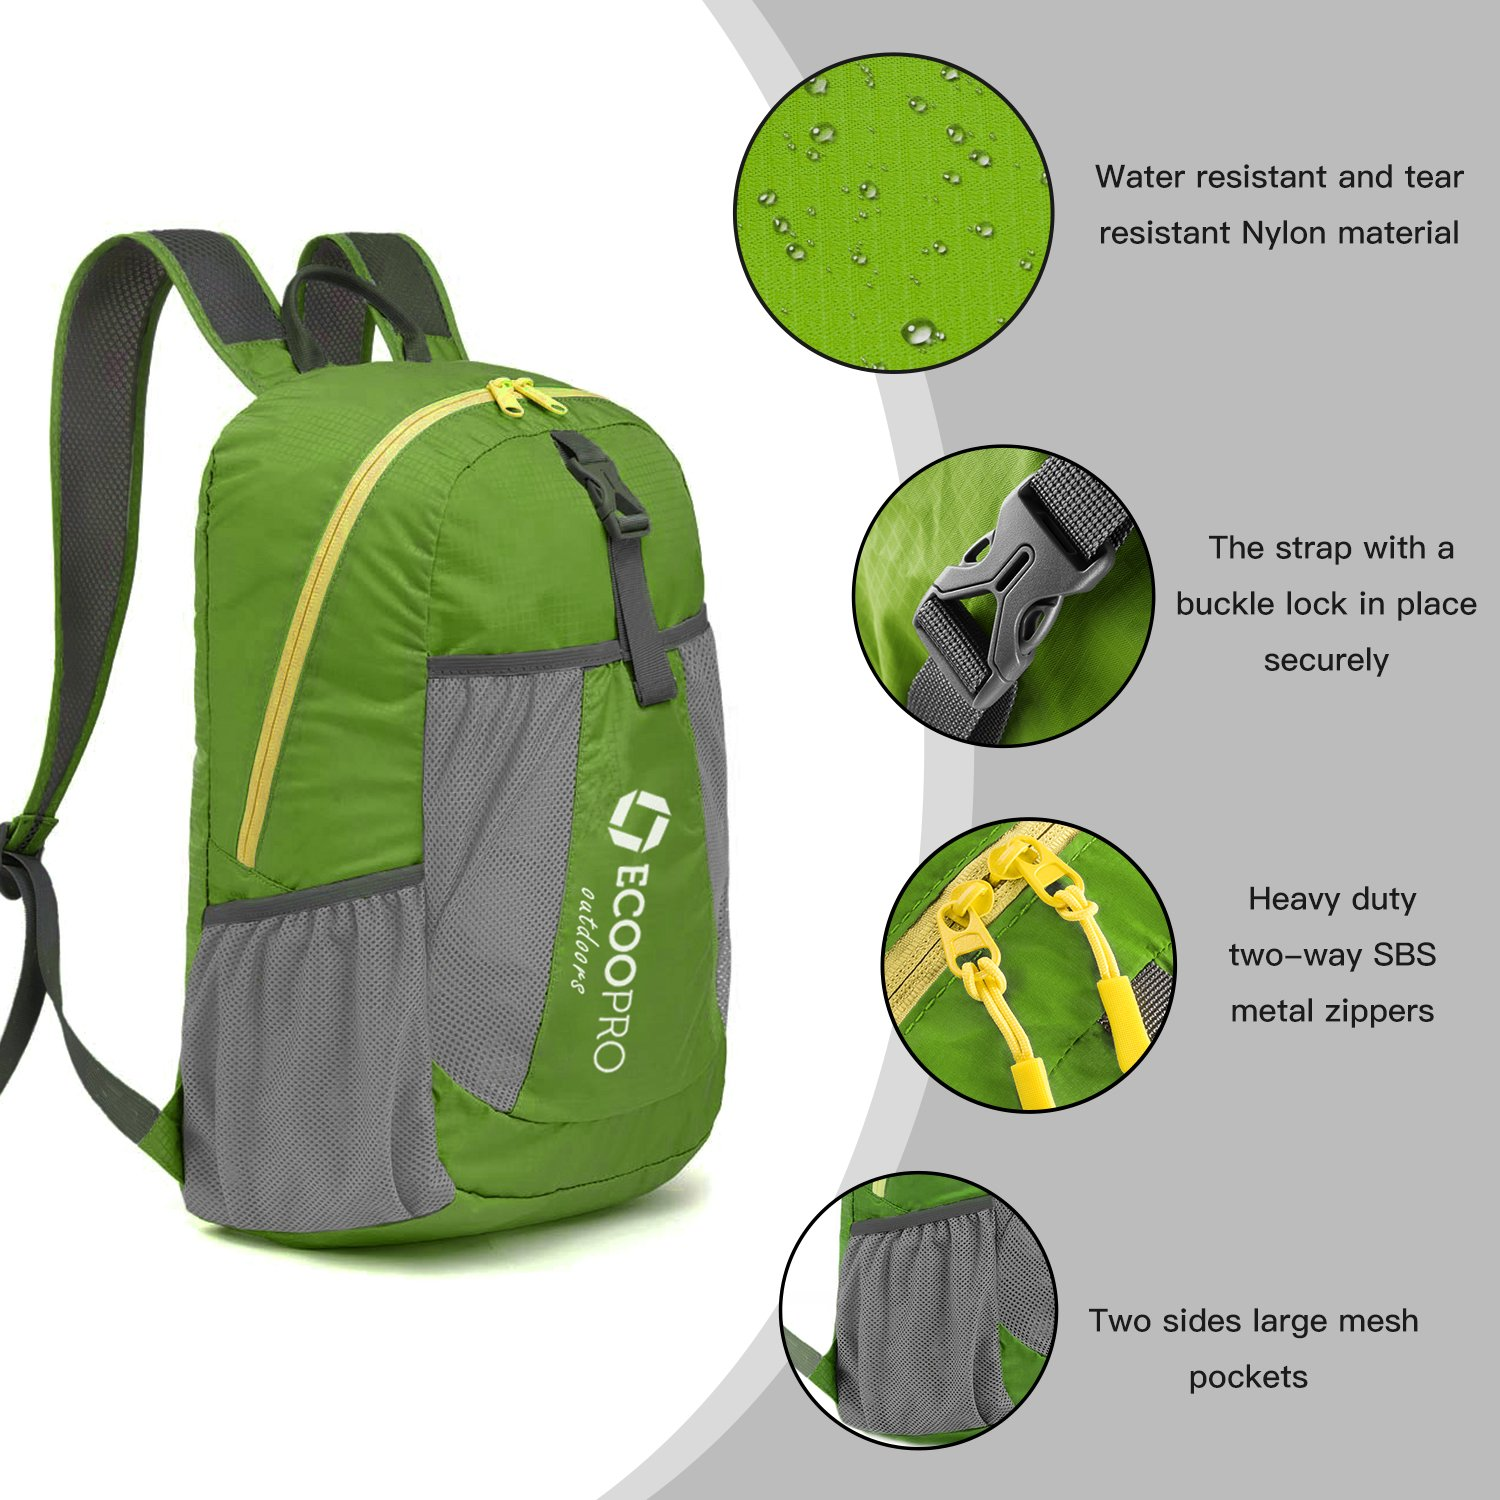 ZOORON Small Ultra Lightweight Packable Hiking Backpack,Water Resistant Foldable Travel Camping Daypack